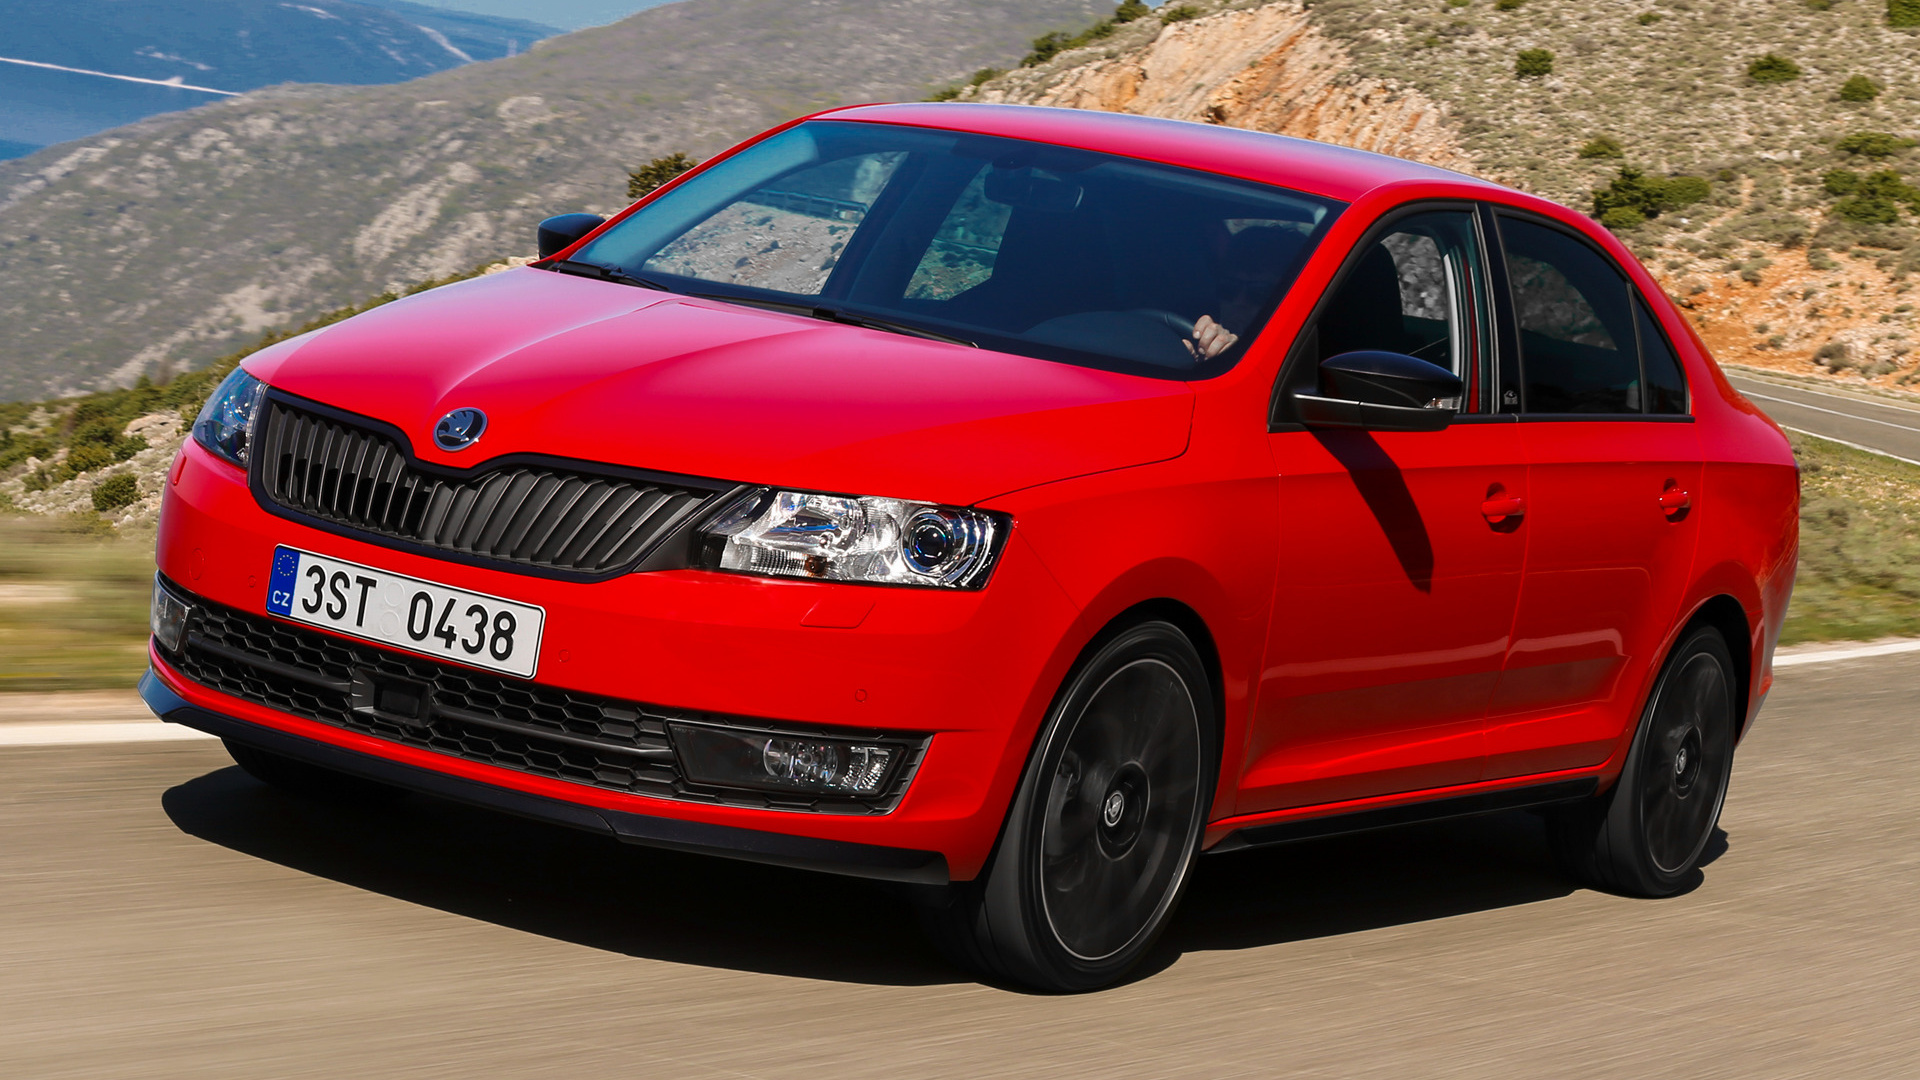 Skoda Rapid Monte Carlo 2015 Wallpapers And Hd Images